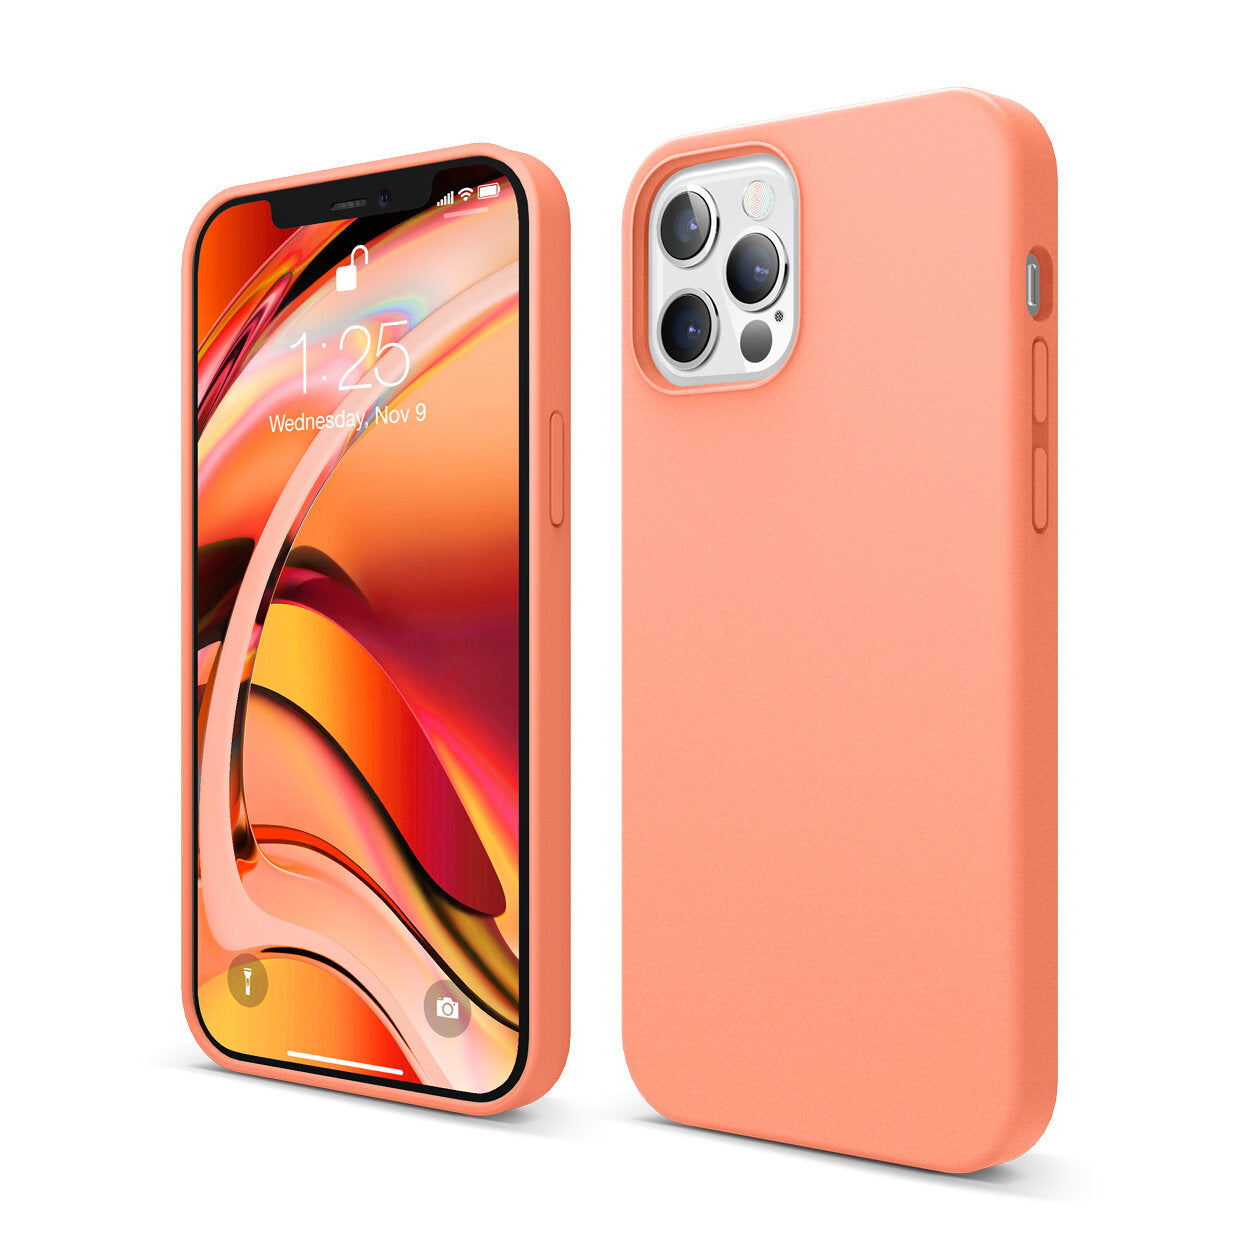 Mons Liquid Silicone Case For IPhone (2020) - Nectarine Orange